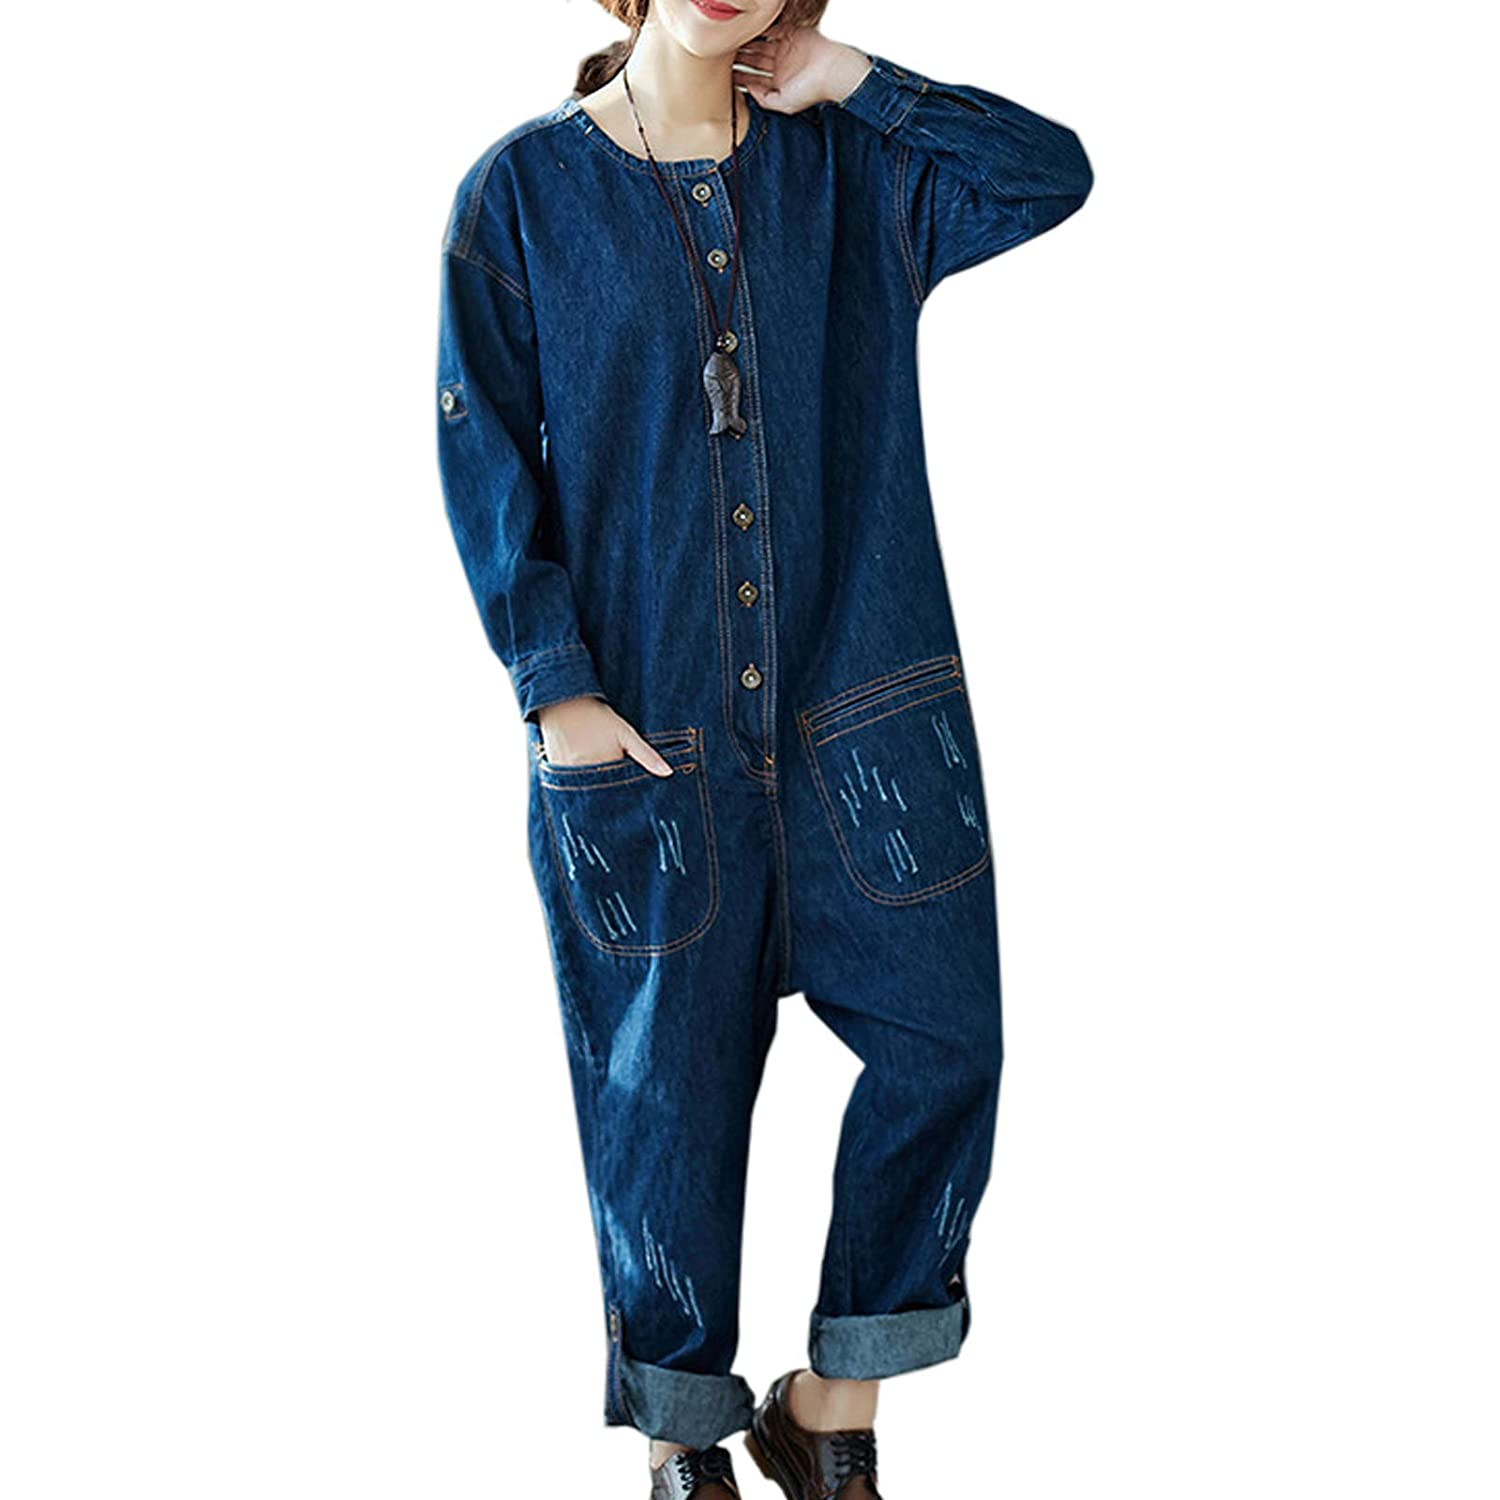 497e07cb6464 Flygo wowens one piece long sleeve denim jean jumpsuits rompers long  overalls one size us blue